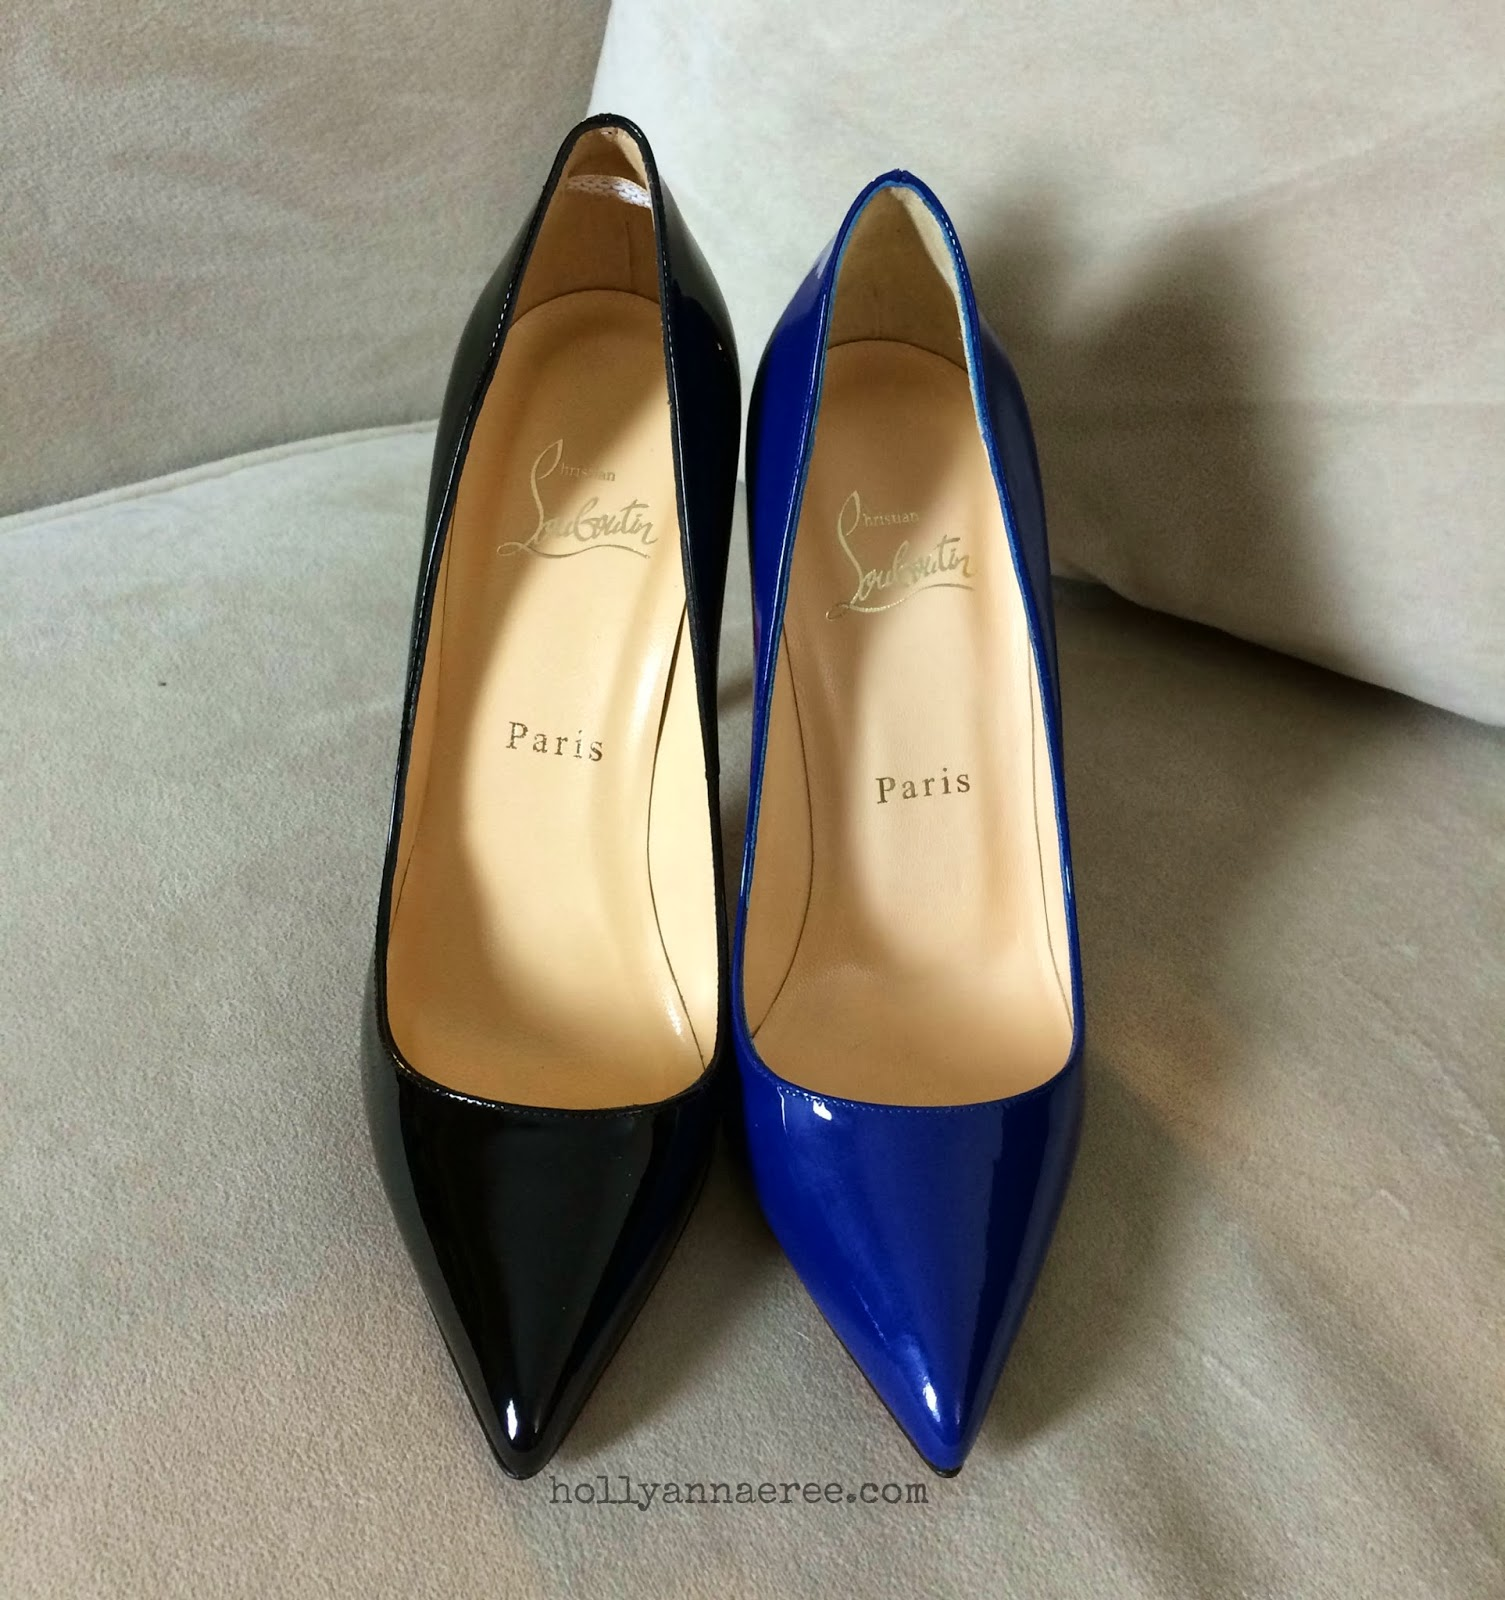 royal blue christian louboutin christian louboutin pigalle reviews